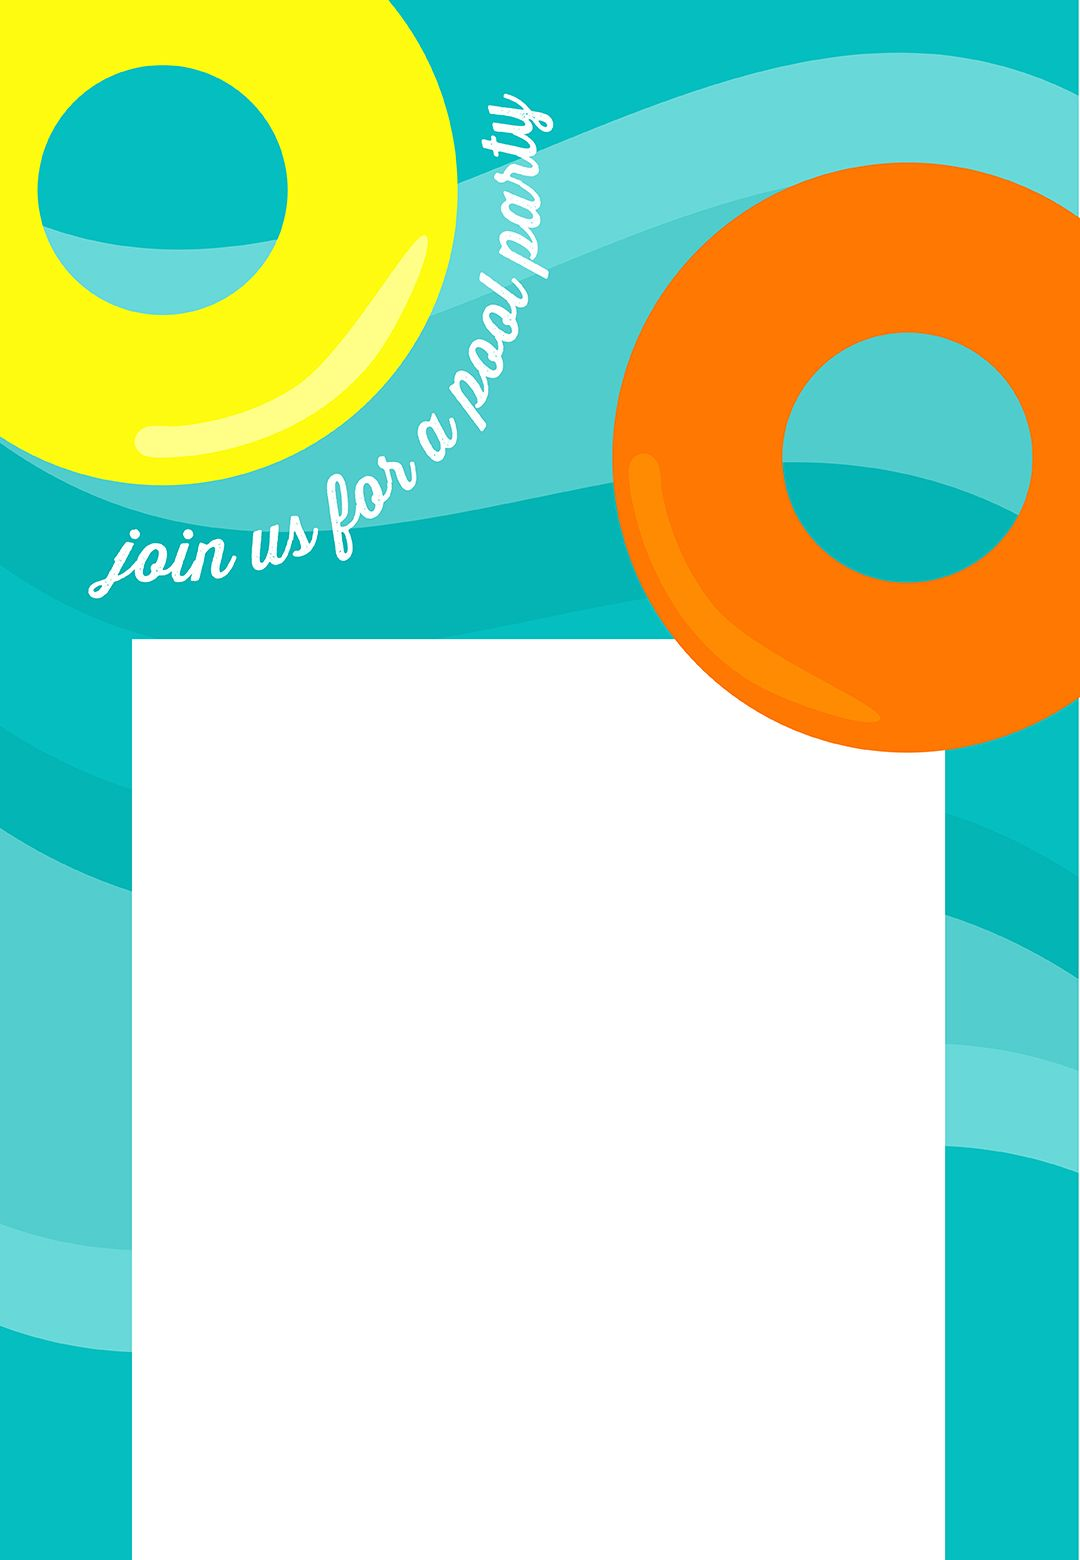 Free Printable Invitations. Customizable and fun! I just made some ...